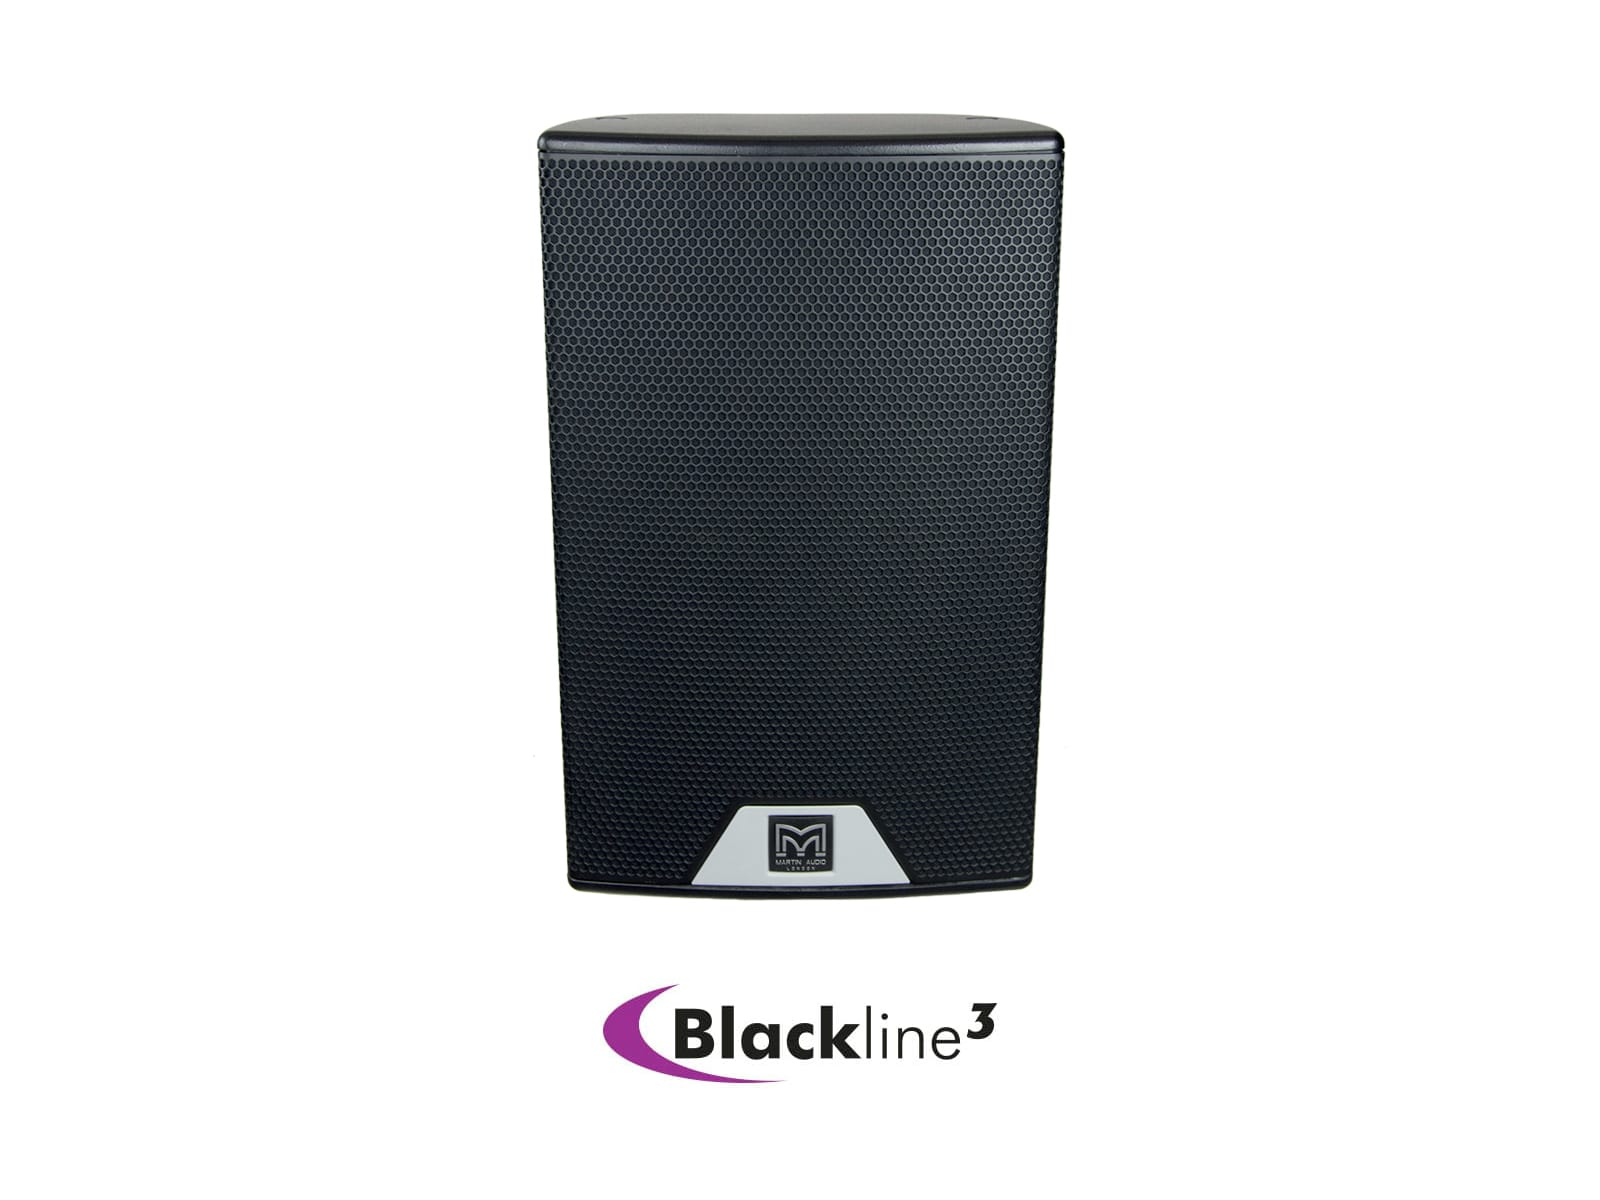 Blackline3 Fx15 High Power Coaxial Full Range System Semiconductor Datasheets Subwoofer Crossover Amplifier Fx10